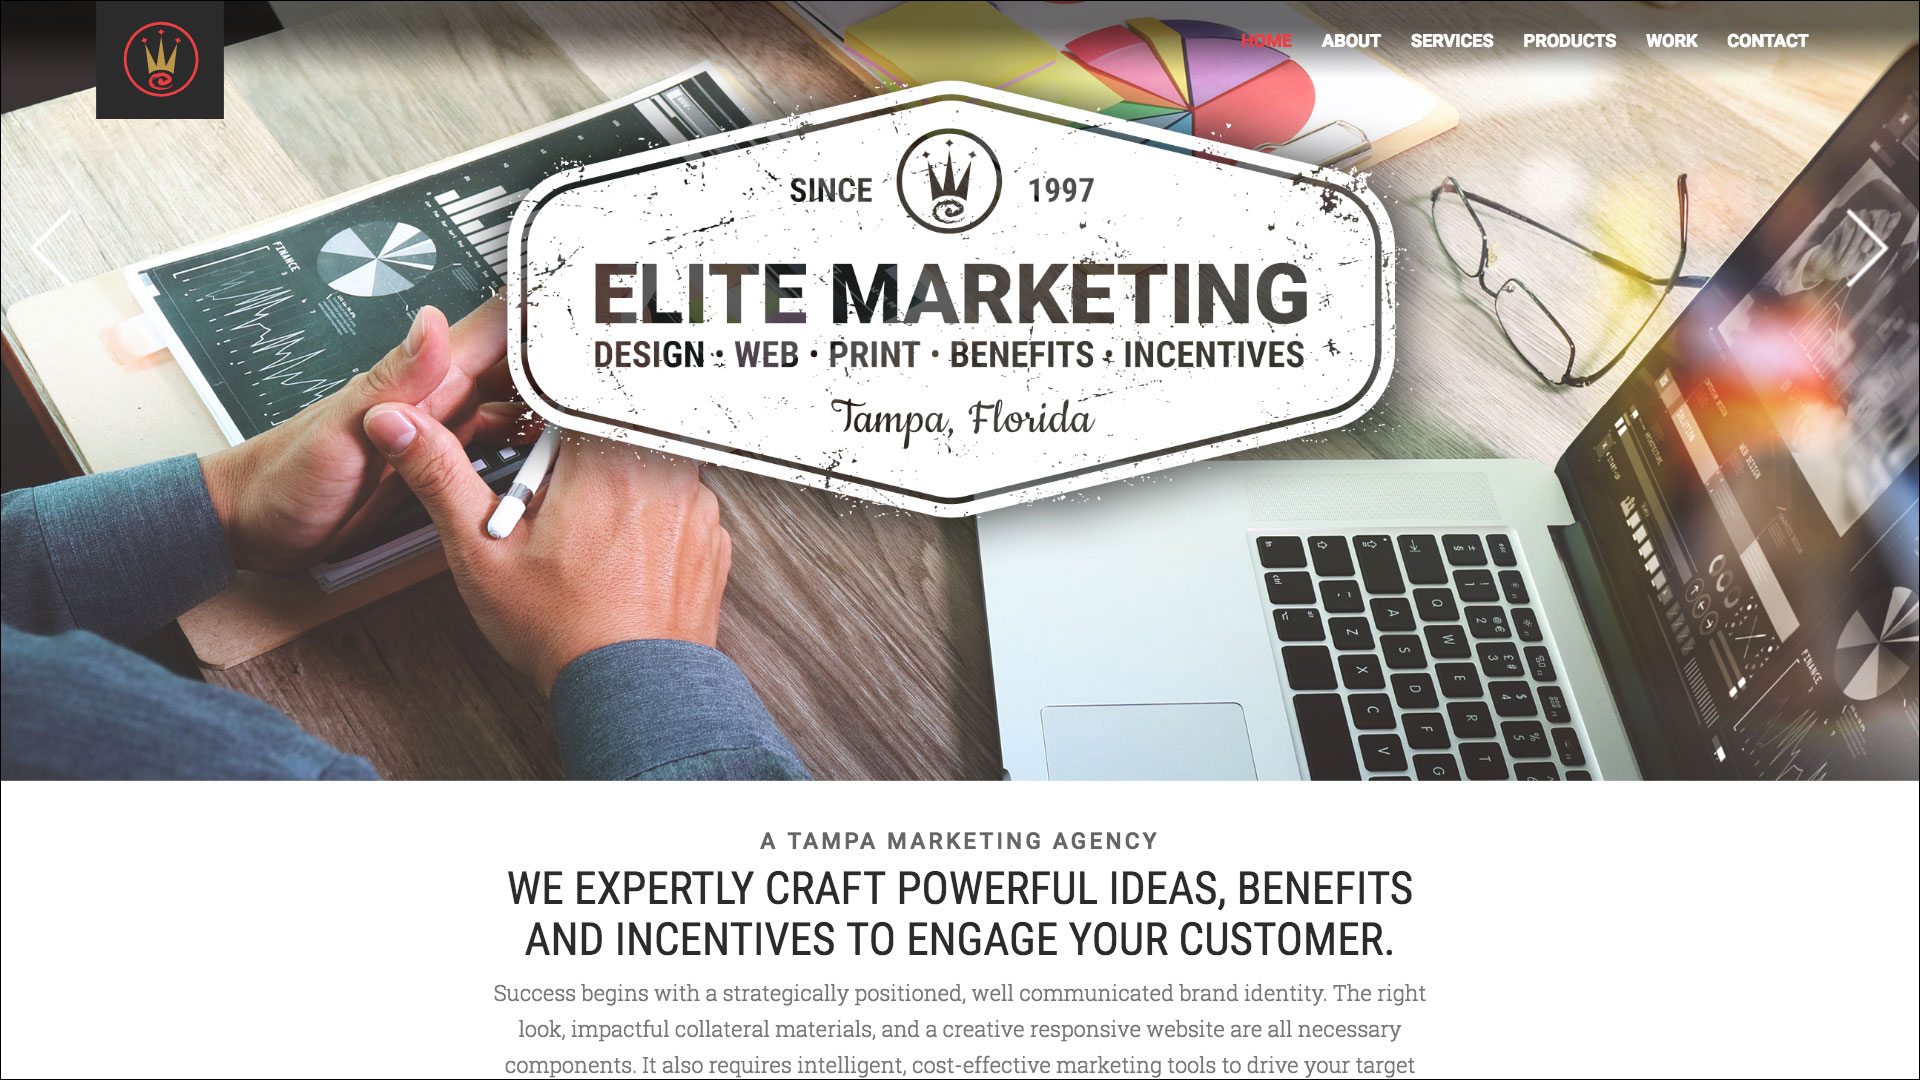 elitemarketing.biz